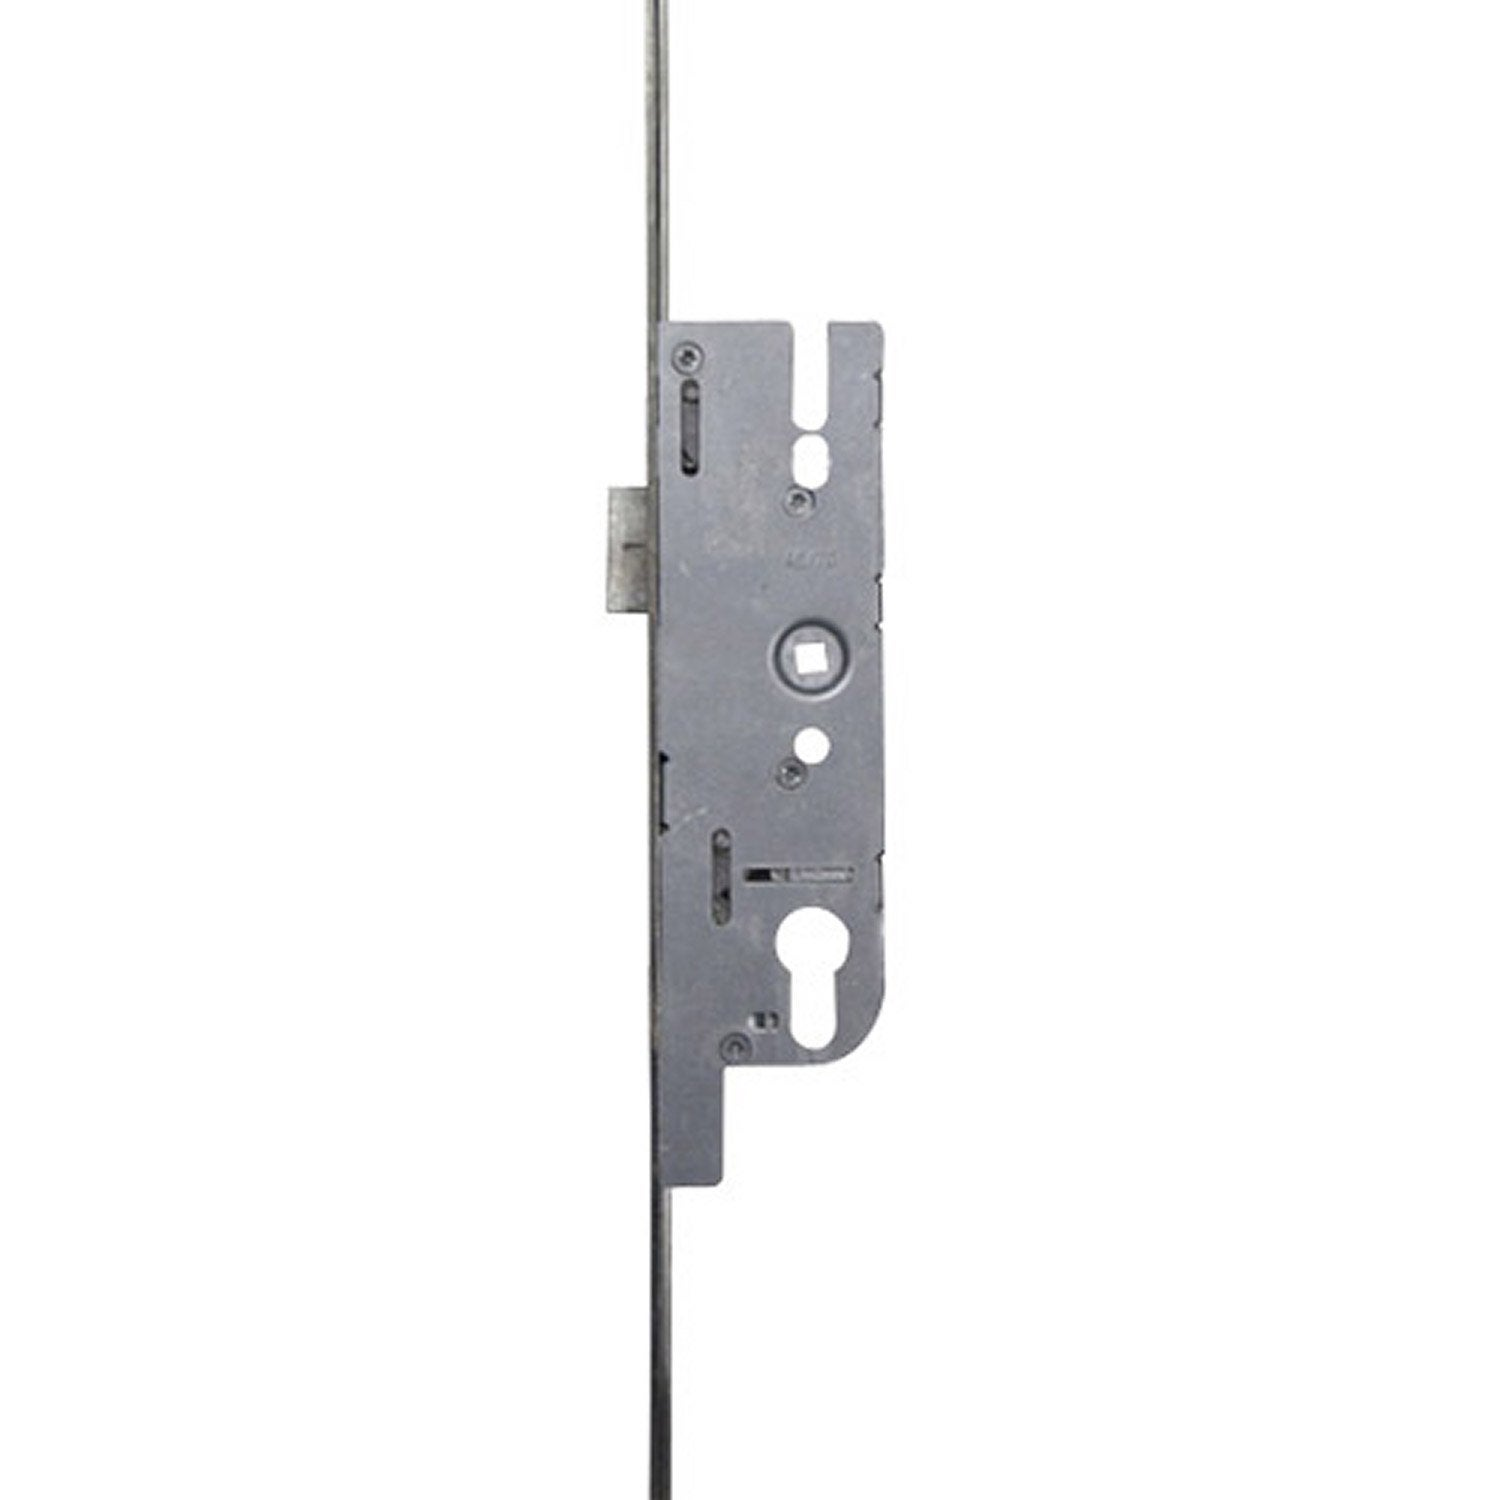 Serrure encastr e multipoint ferco europa axe 40 mm for Porte 5 points bloquee